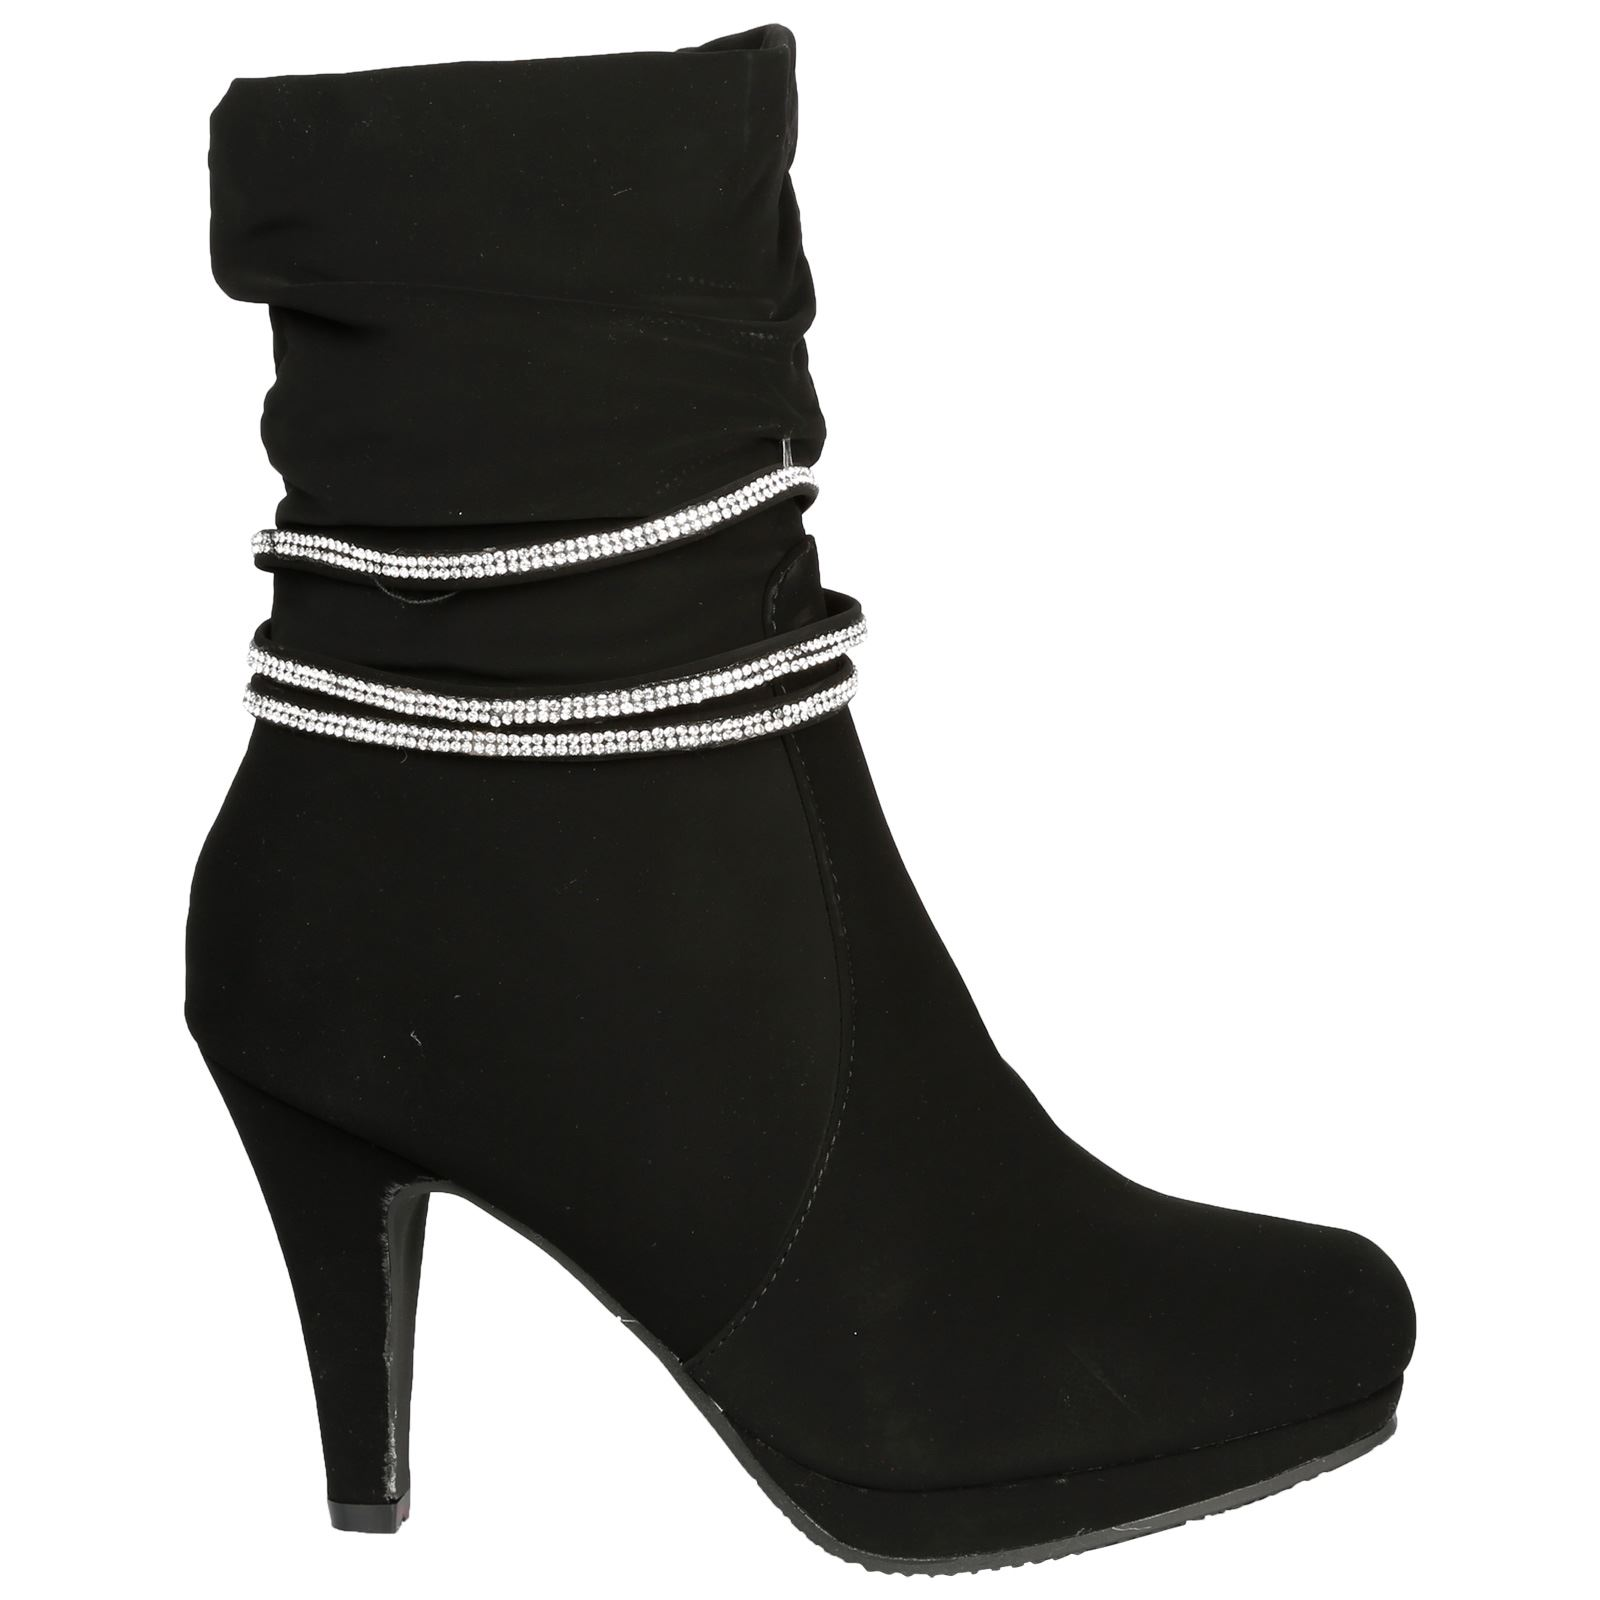 Estrella-Womens-Slim-High-Heel-Diamante-Strap-Slouch-Ankle-Boots-Casual-Style thumbnail 3